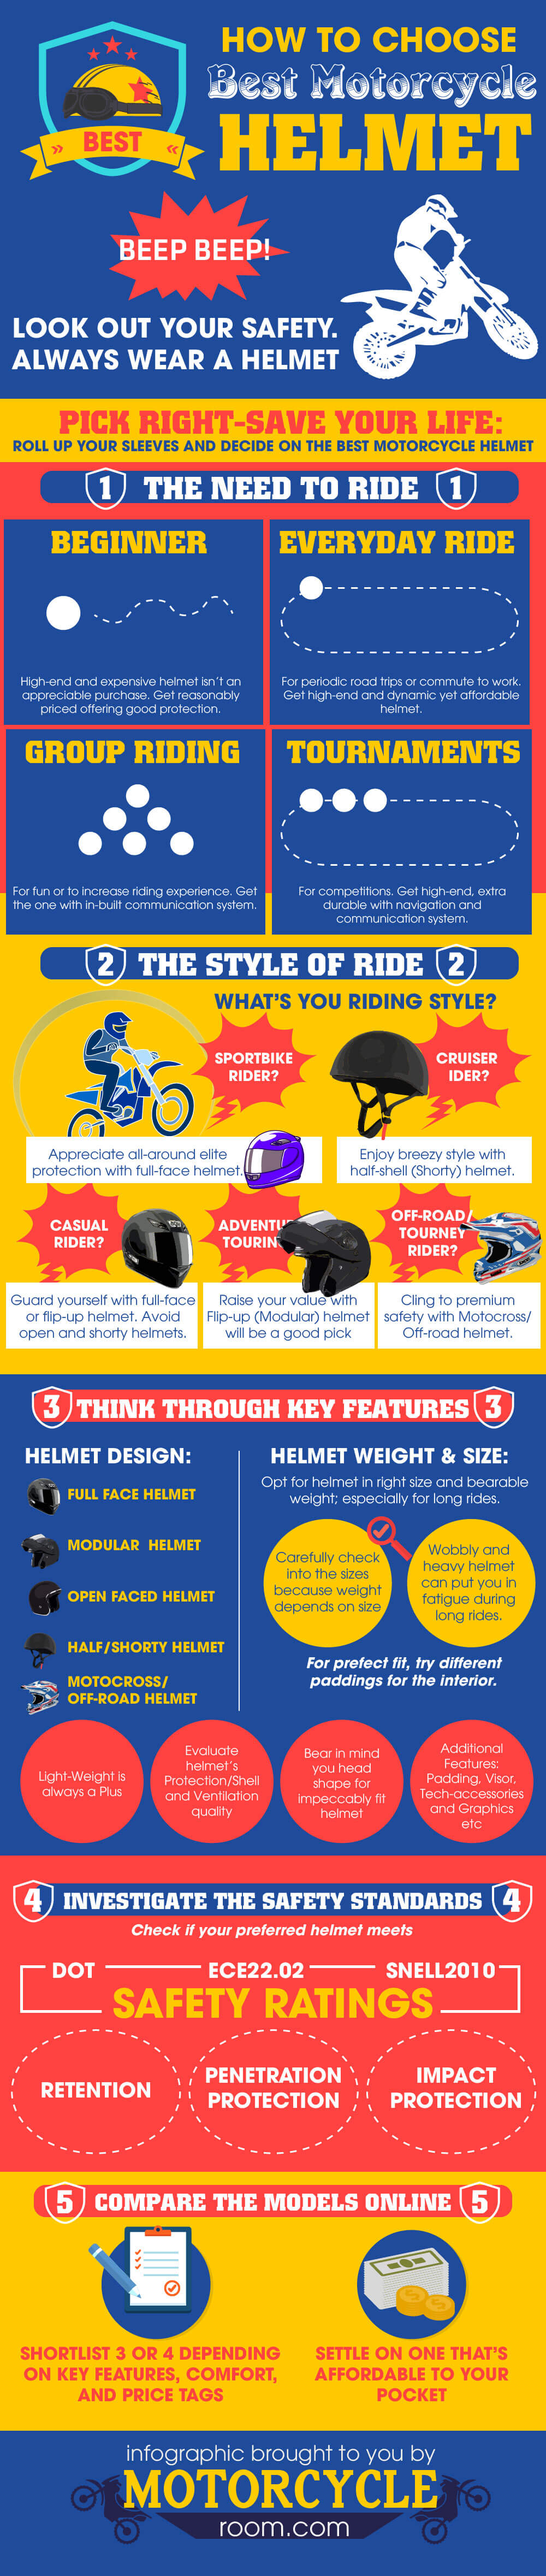 How To Choose Best Motorcycle Helmet